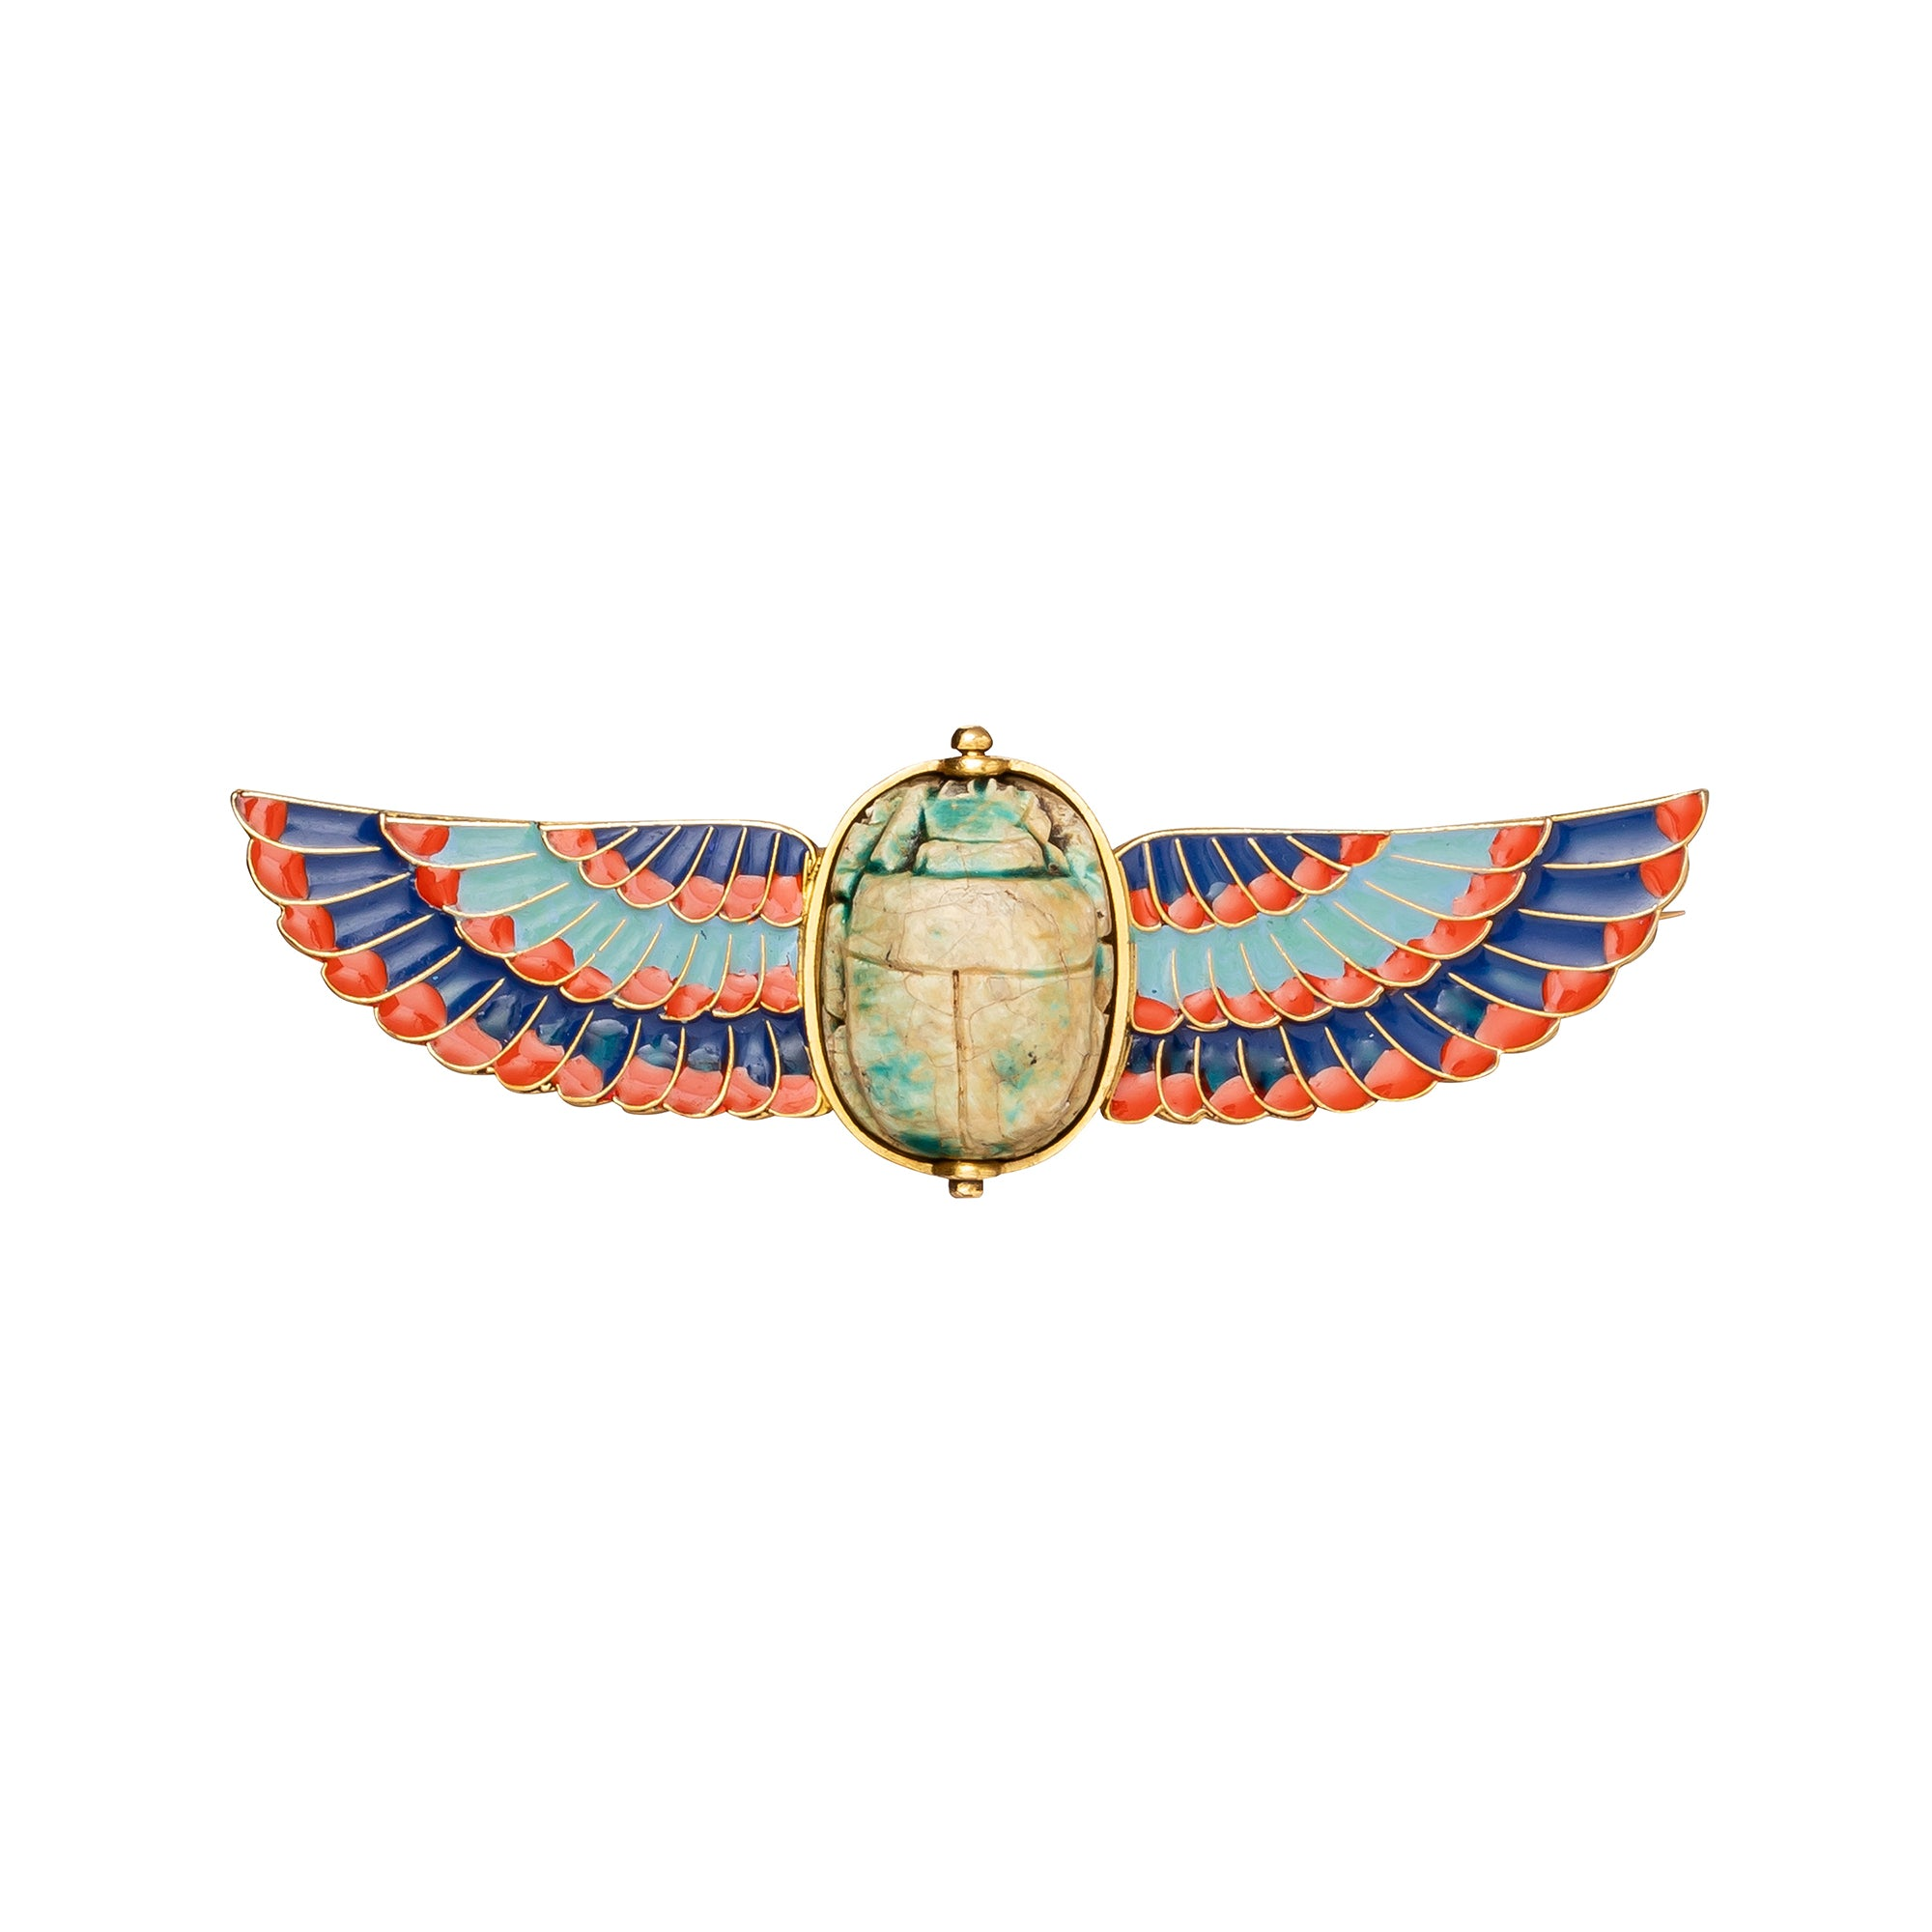 Enamel Winged Scarab Brooch - Antique & Vintage Jewelry - Charms & Pendants | Broken English Jewelry